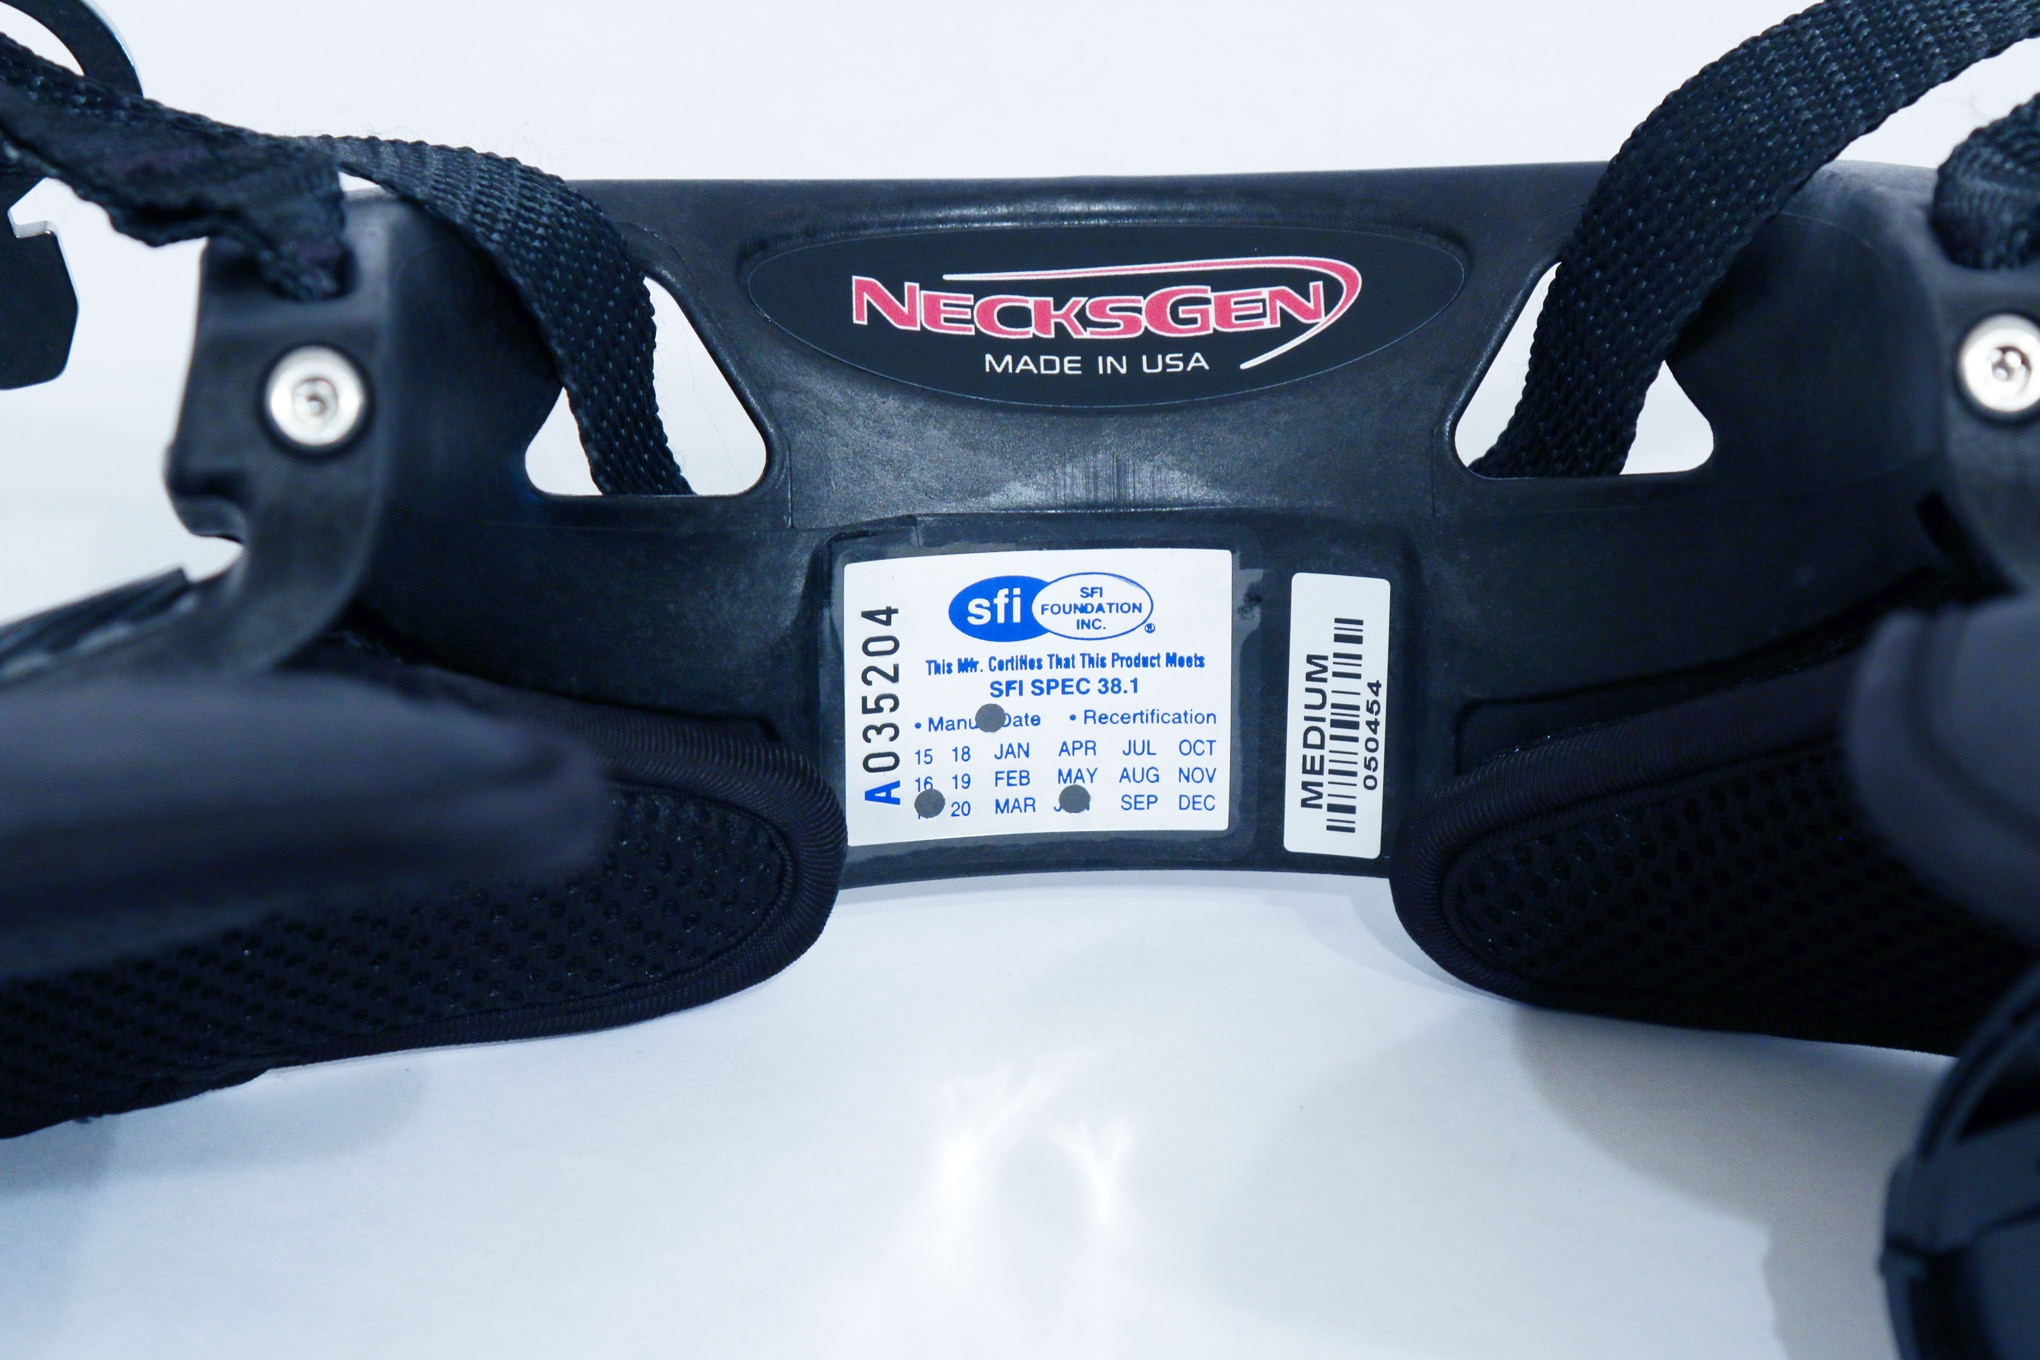 010 Necksgen Rev2 Lite Head And Neck Restraint